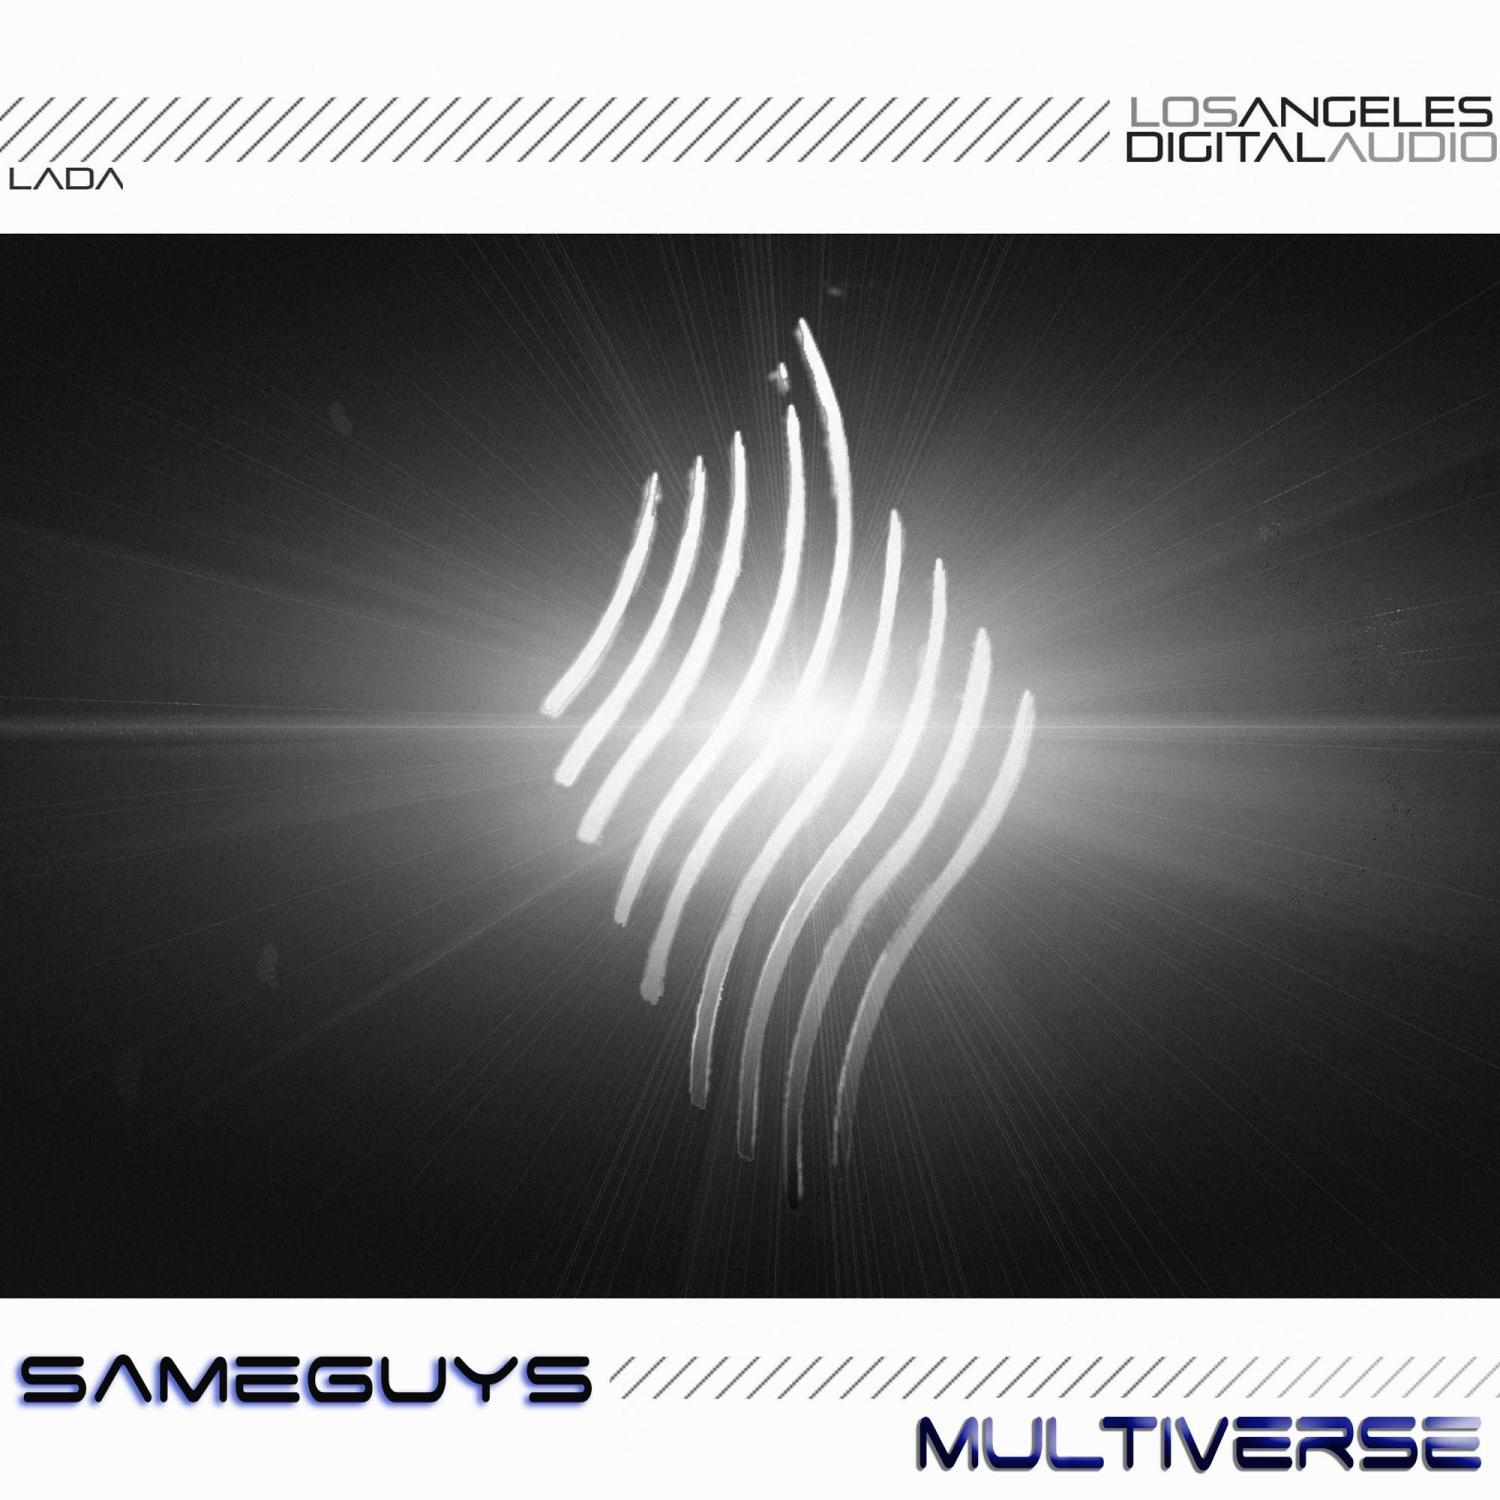 Same Guys - Multiverse (Original Mix)